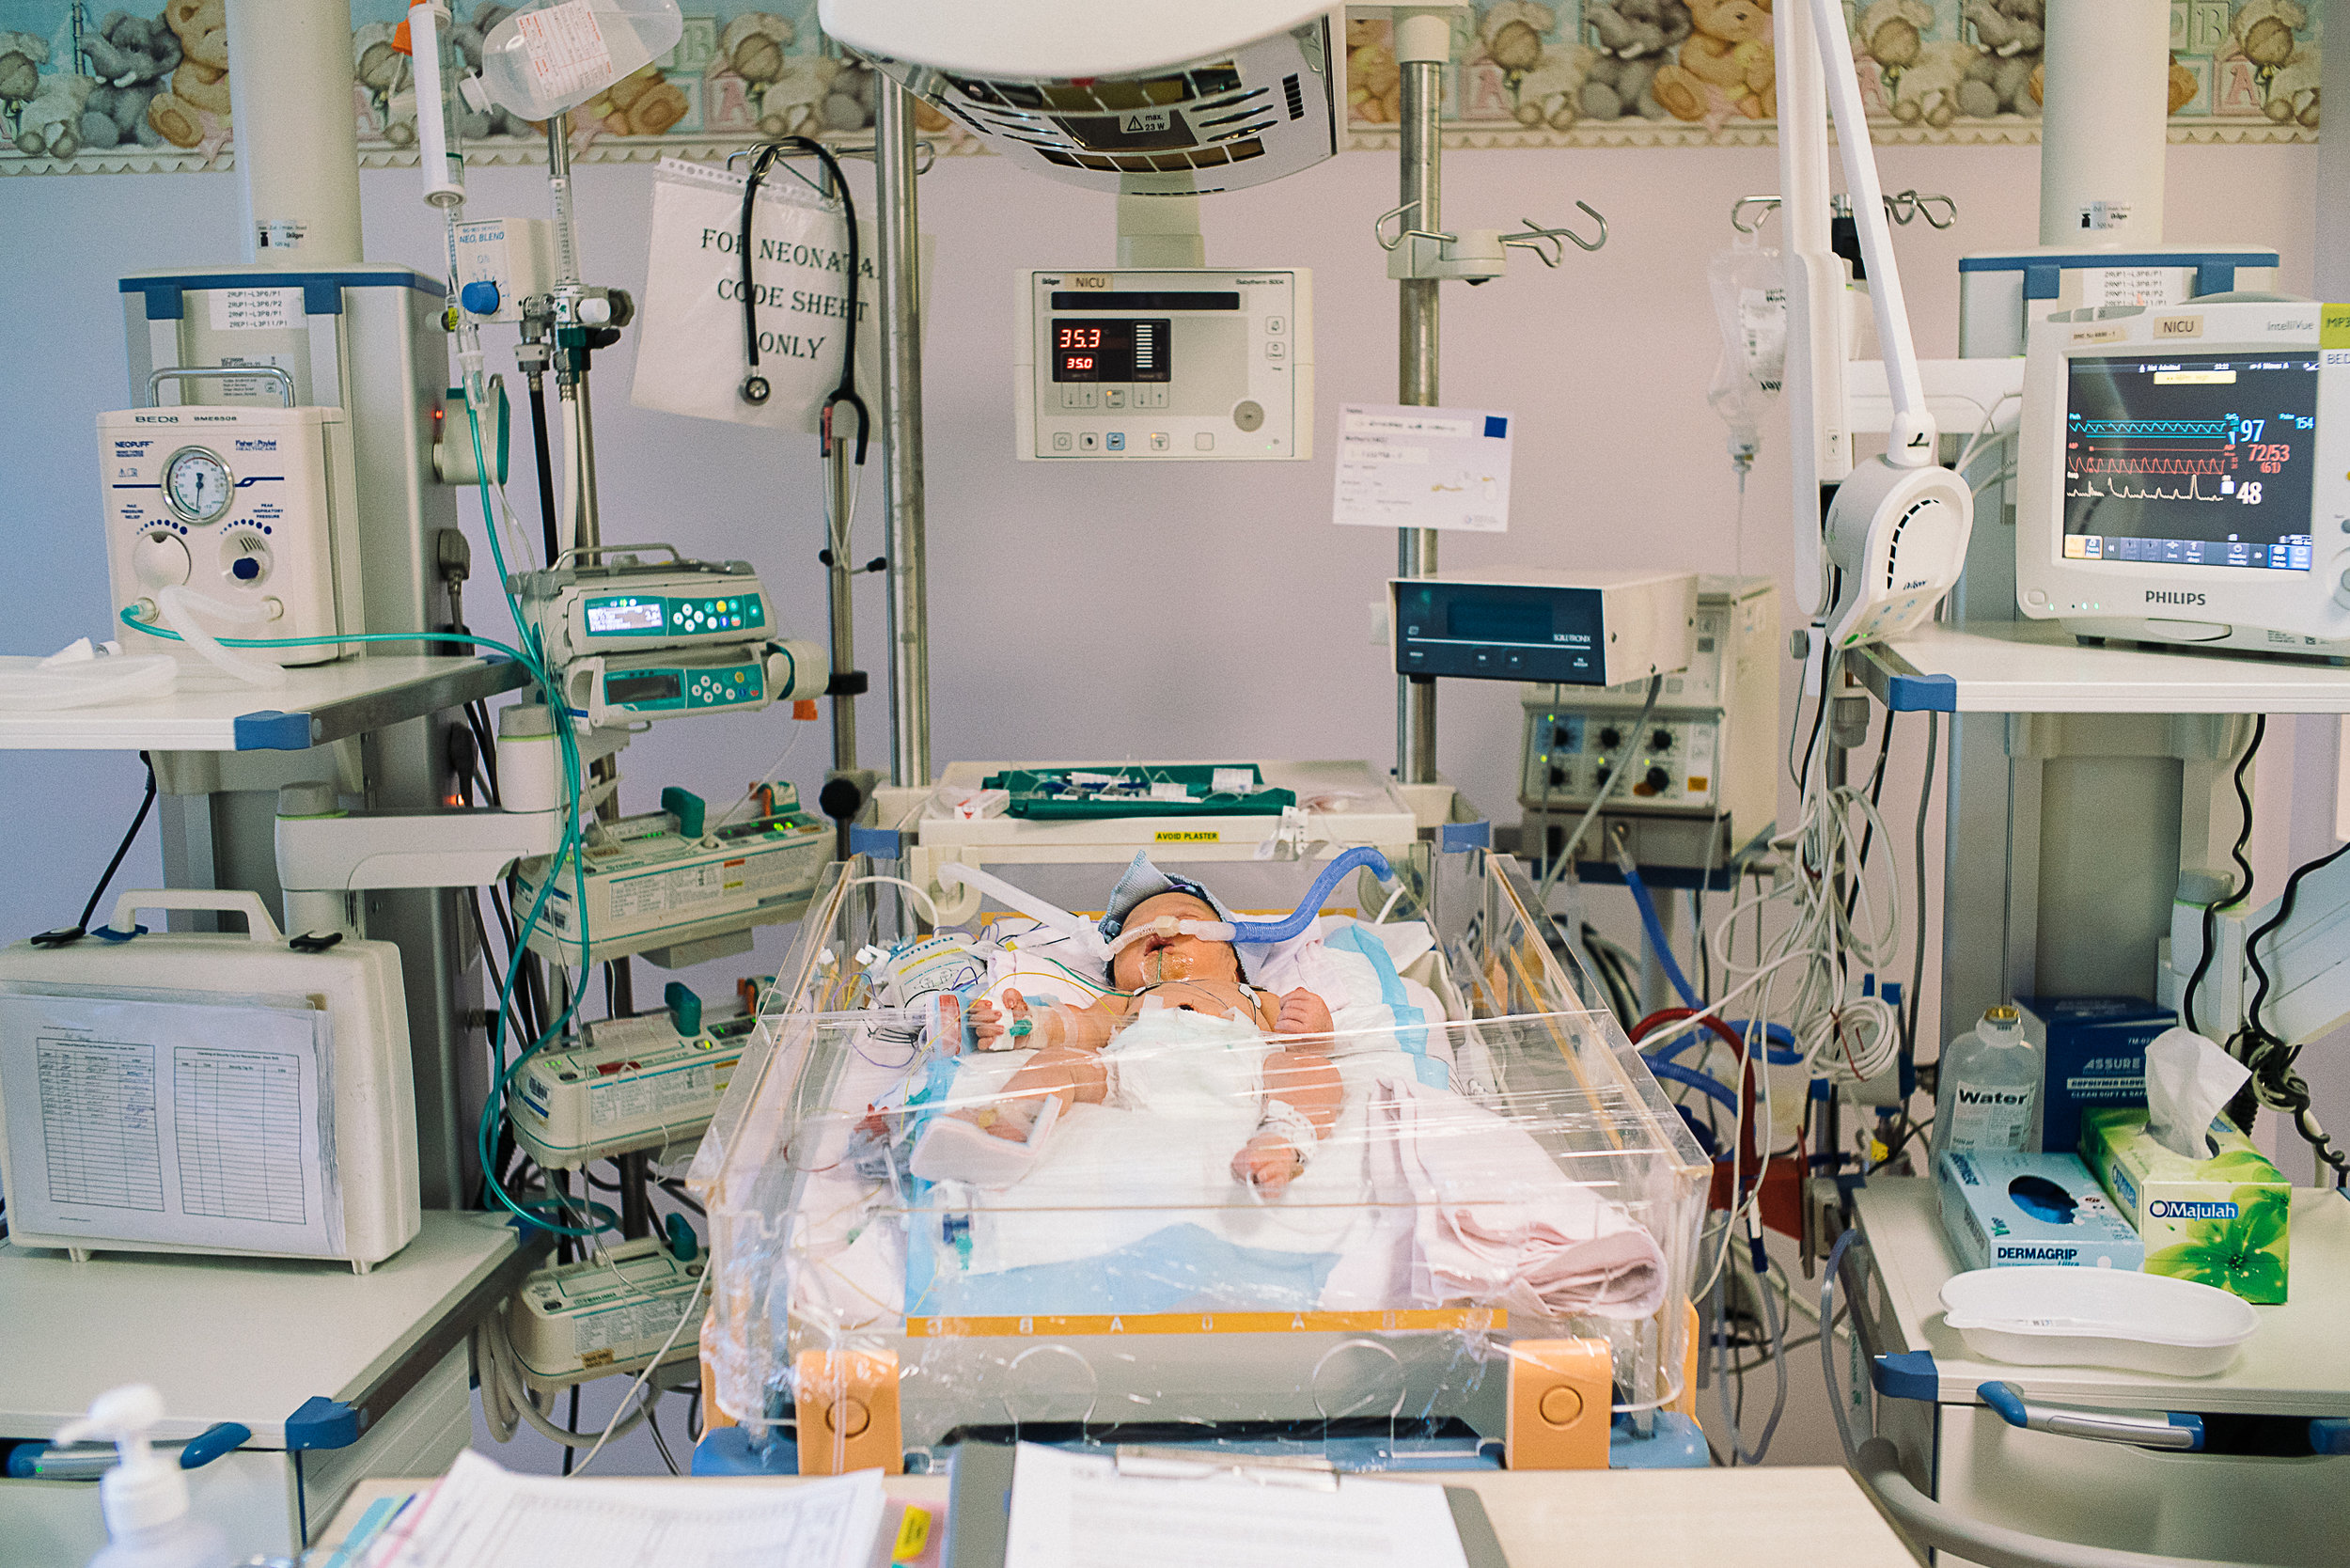 While Hana was warded in the Neonatal Intensive Care Unit (NICU), other machines were set-up to conduct tests to find out what was the cause of the problem.  She also had to be put on life support in the meantime.